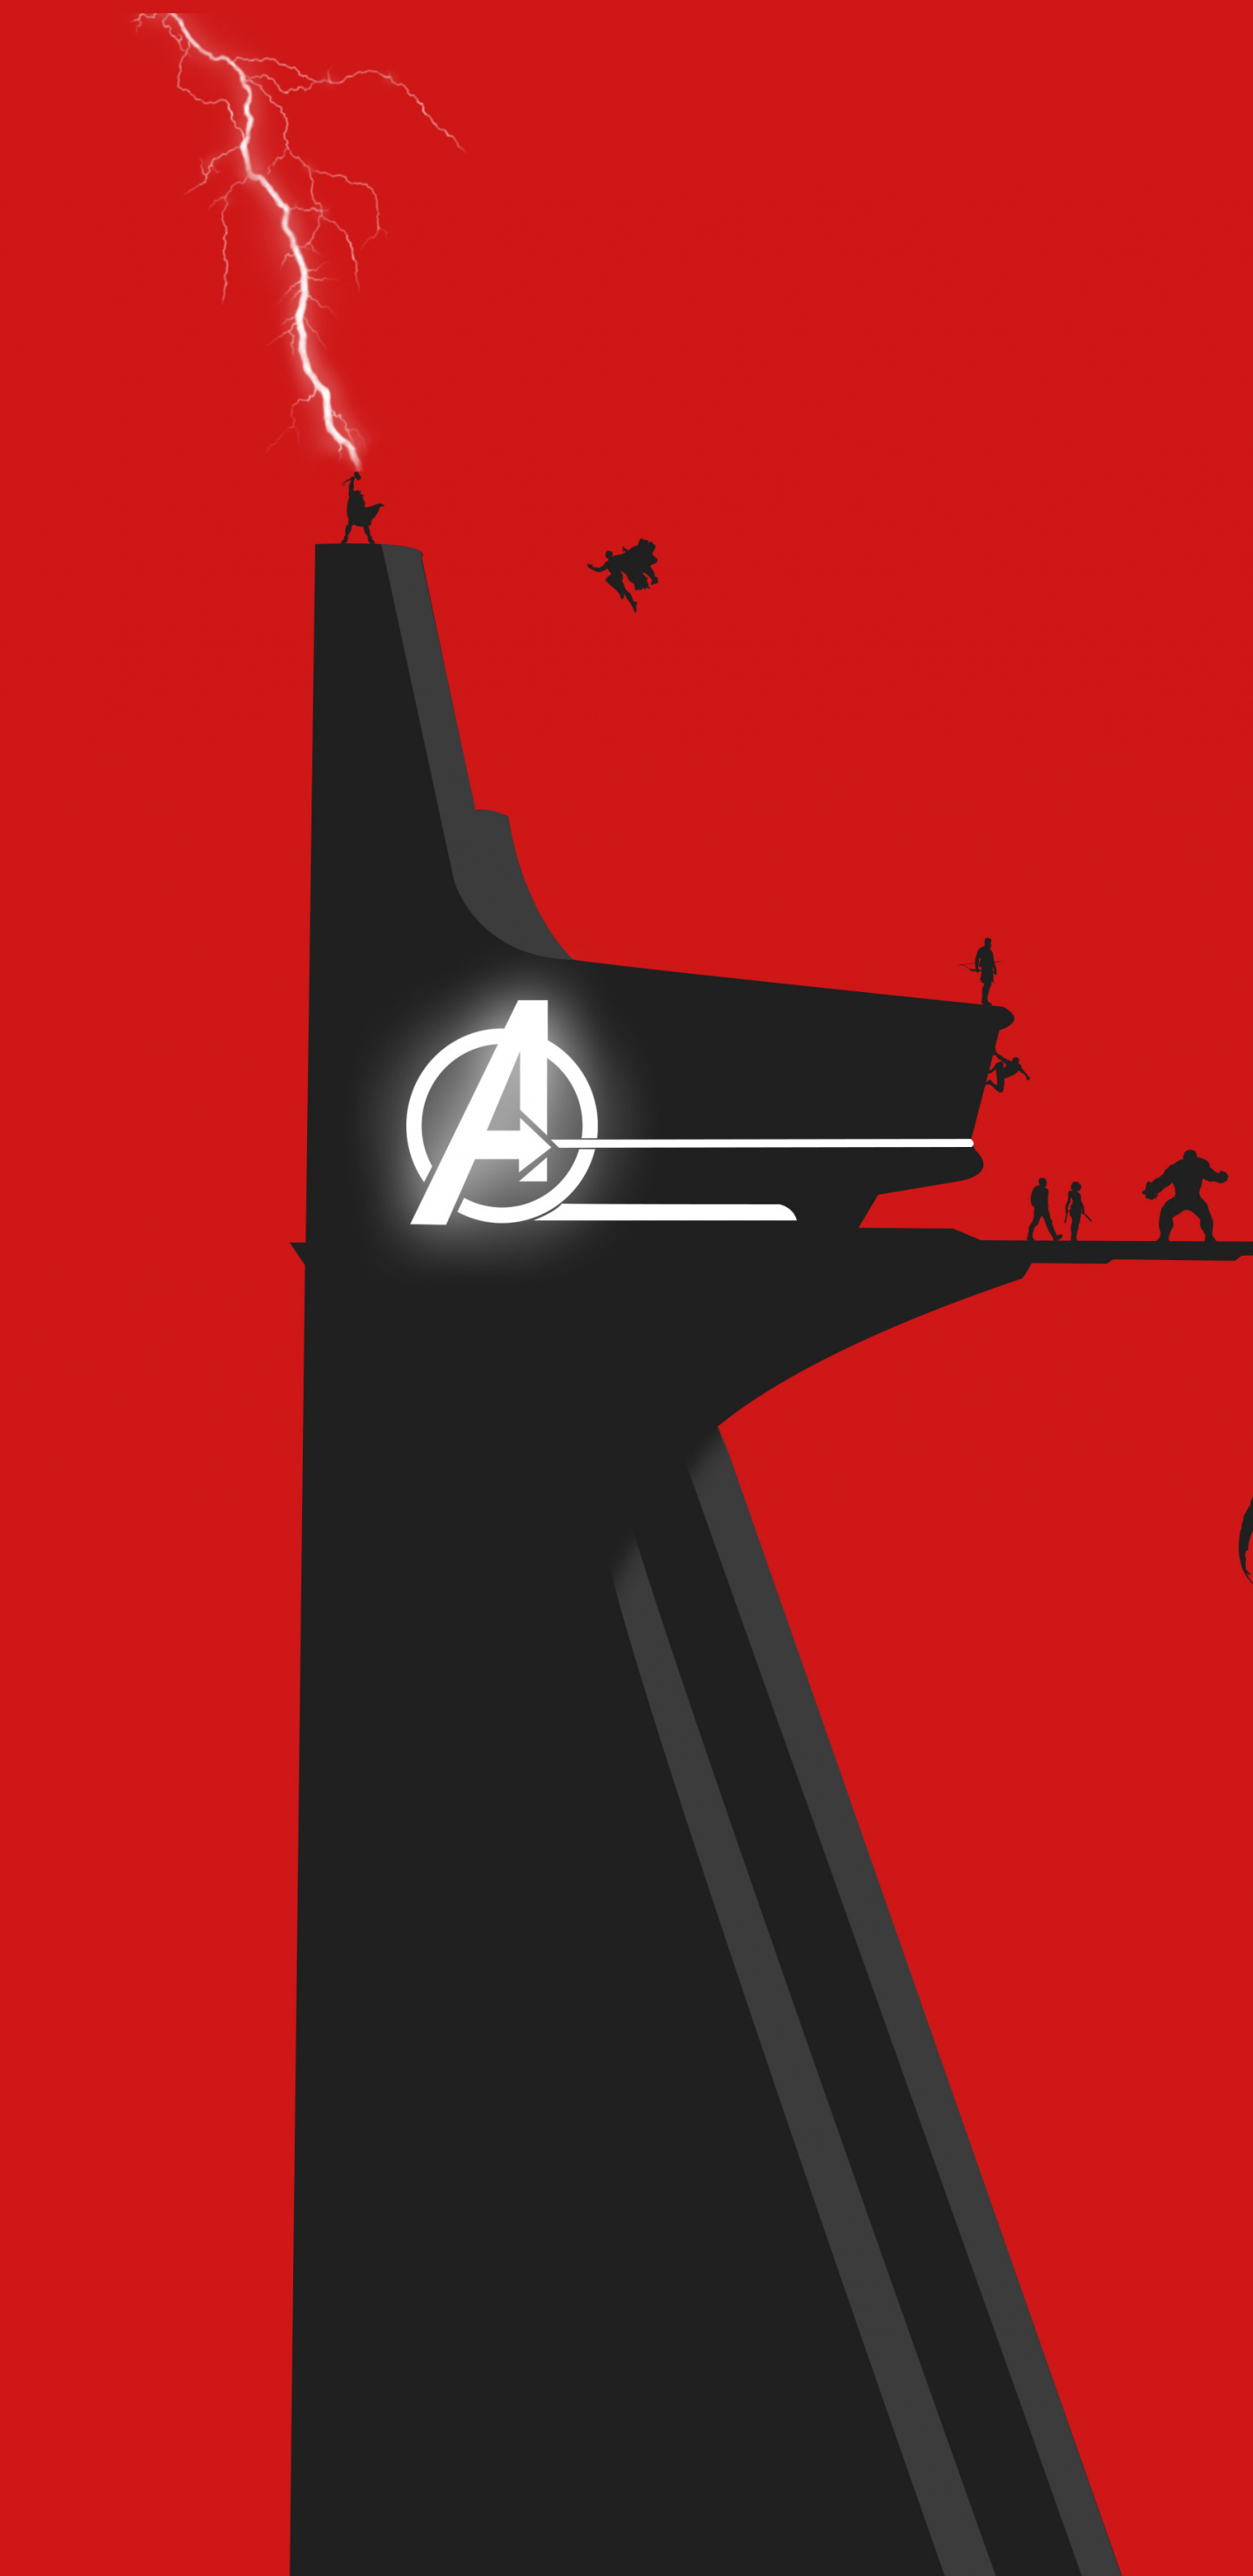 Download 1440x2960 wallpaper avengers